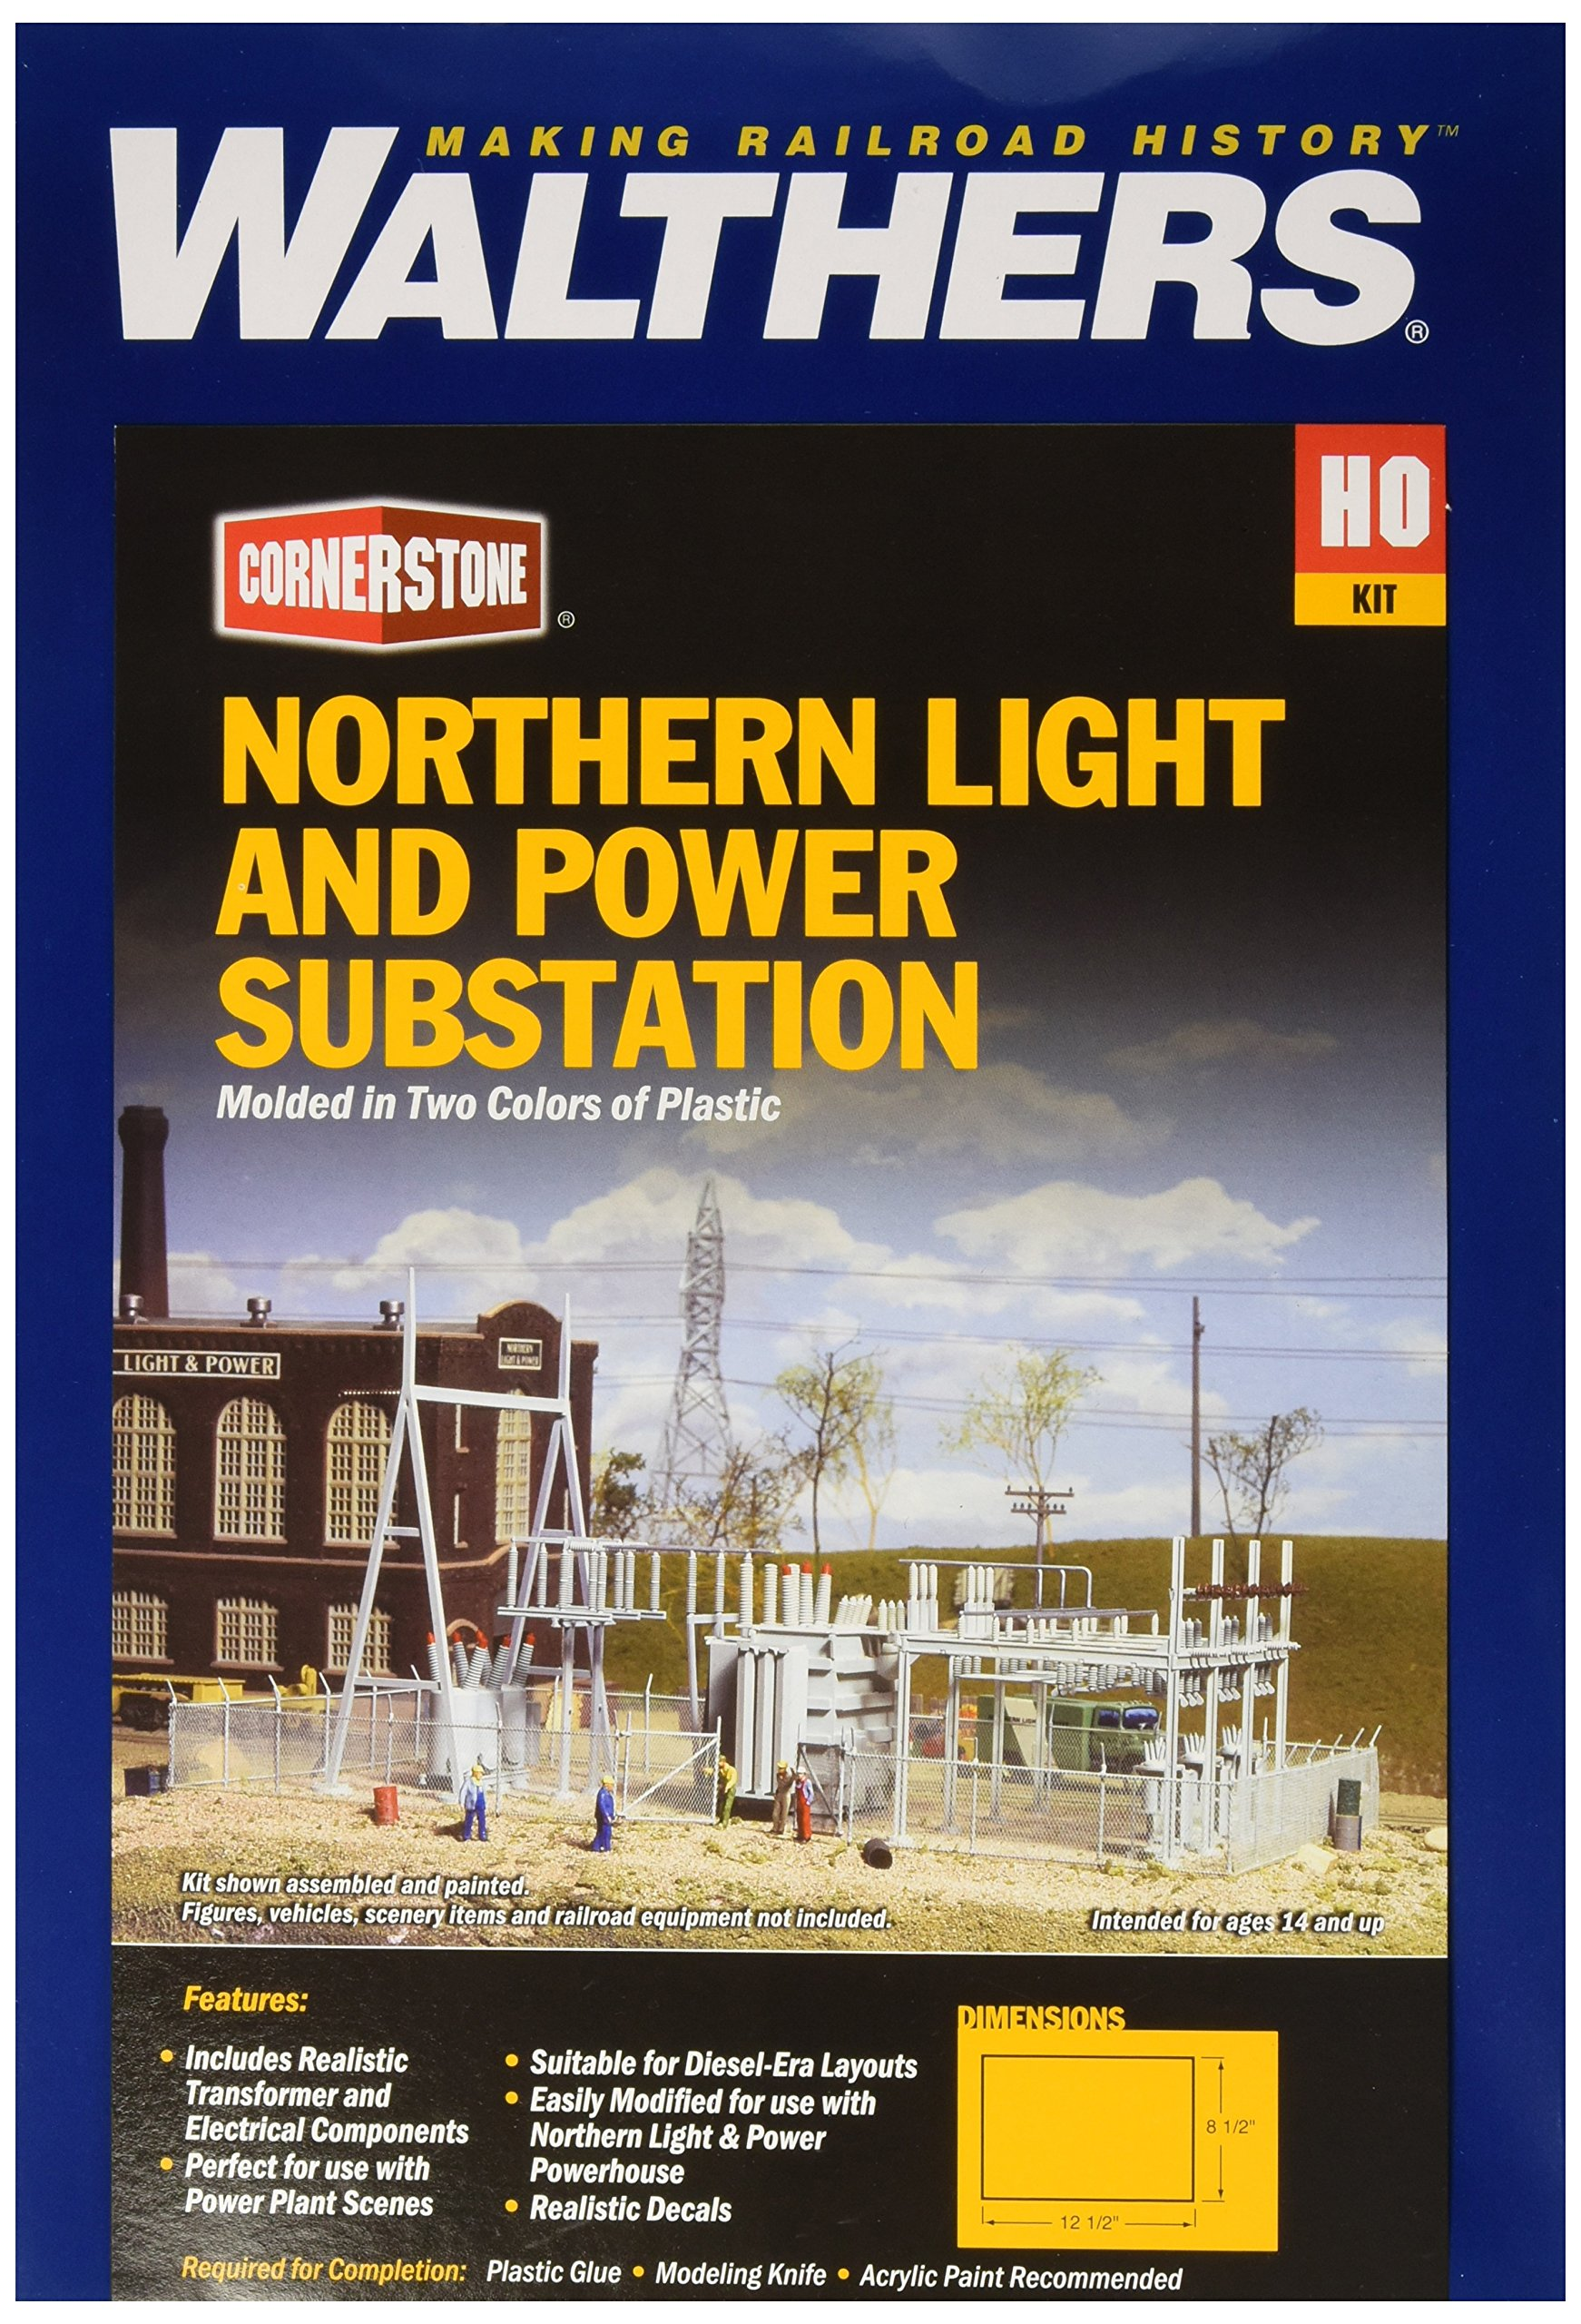 Walthers Cornerstone Series Kit HO Scale Northern Light & Power Substation & Accessories